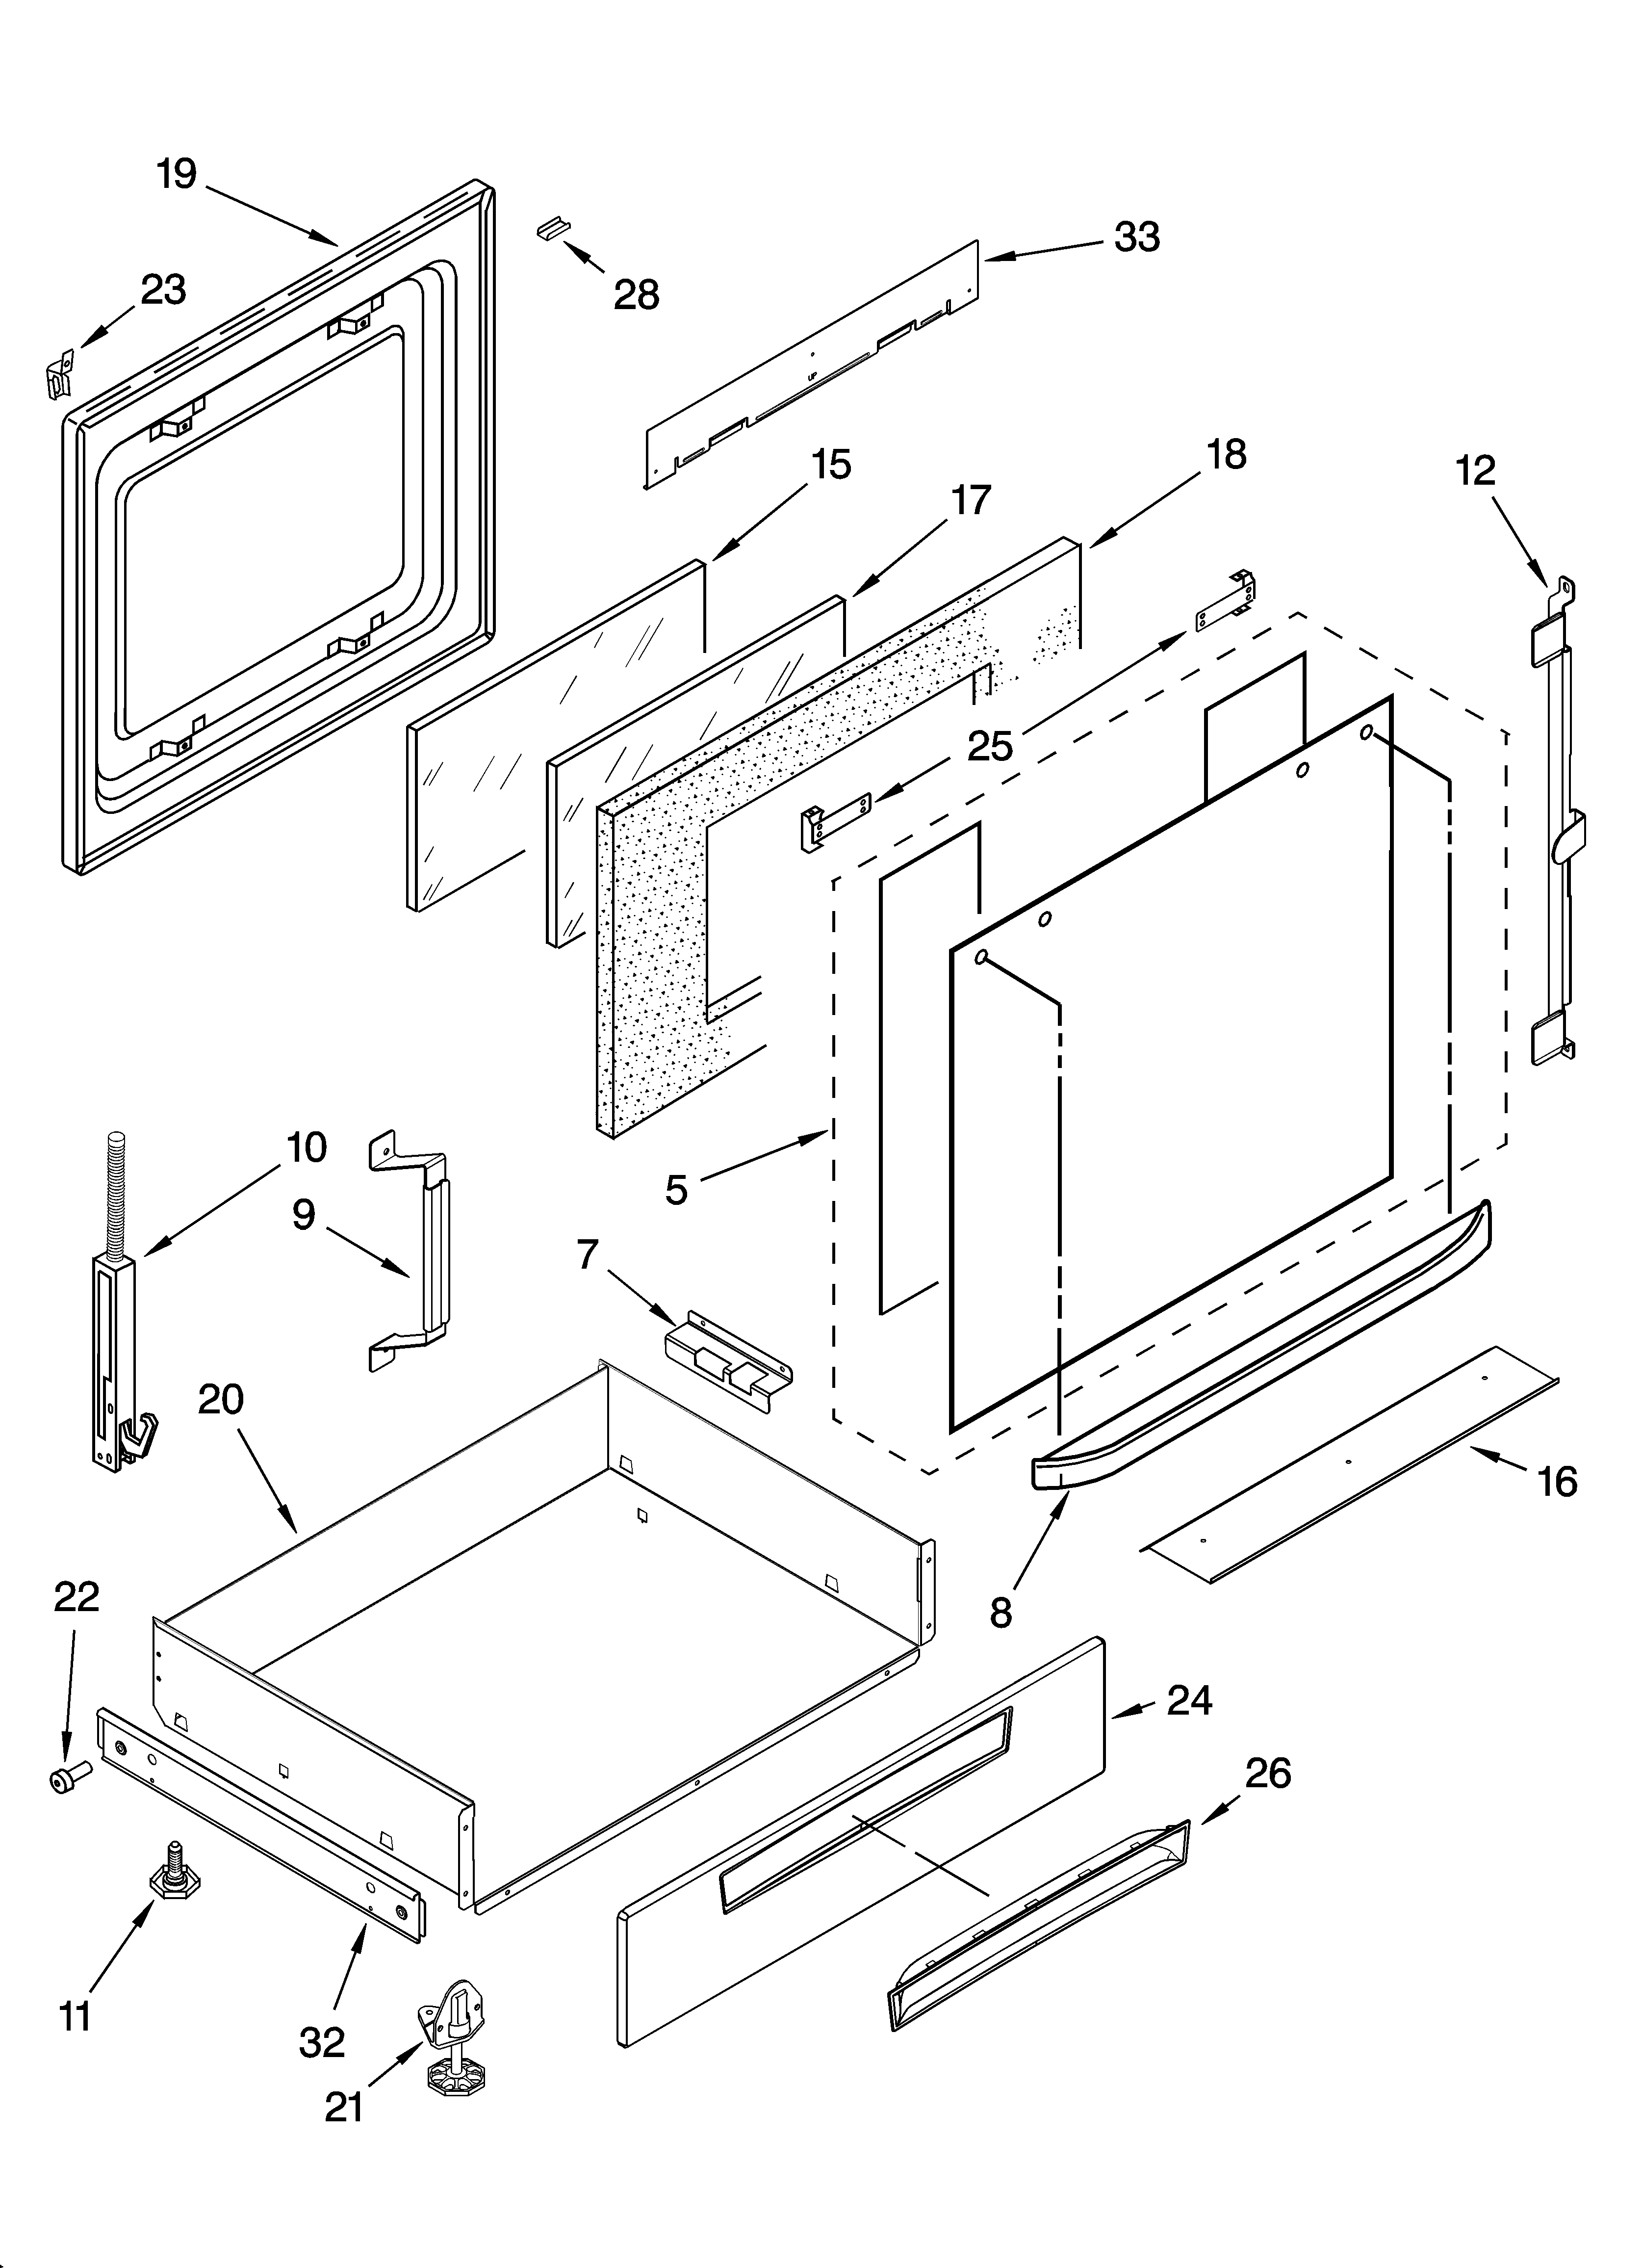 Computer Parts Drawing At Getdrawings